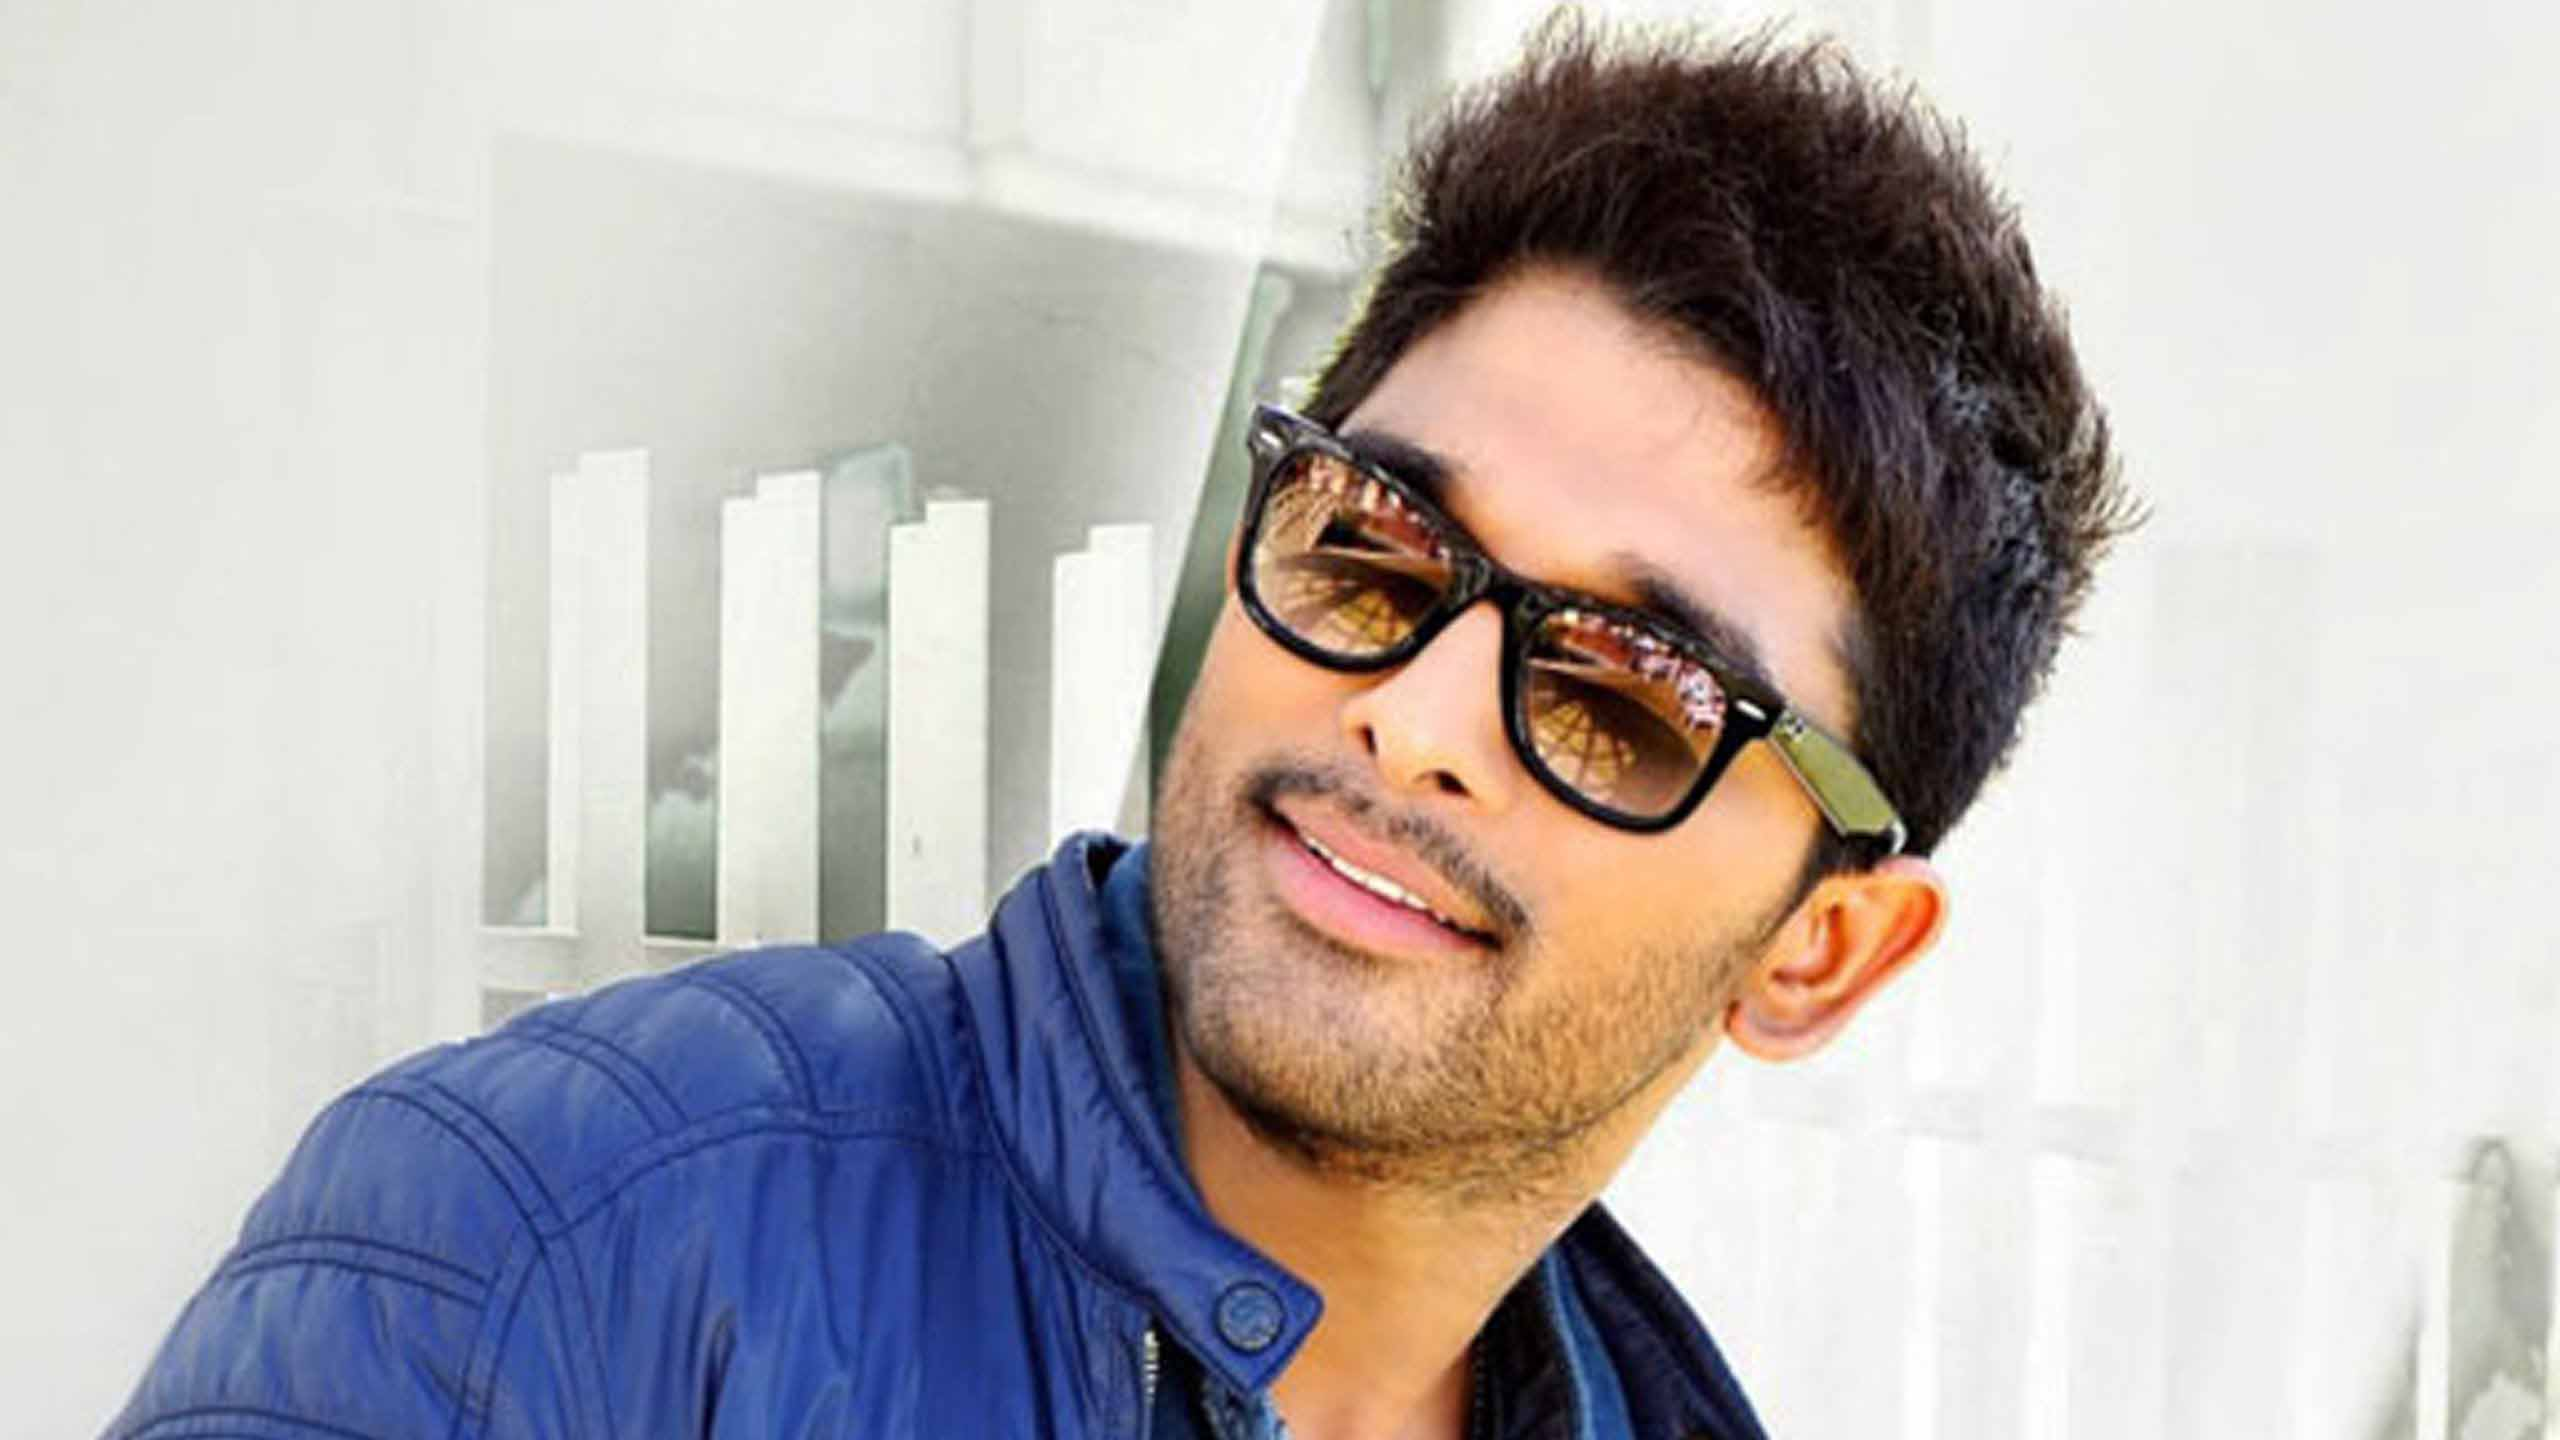 allu arjun wallpapers wallpaper